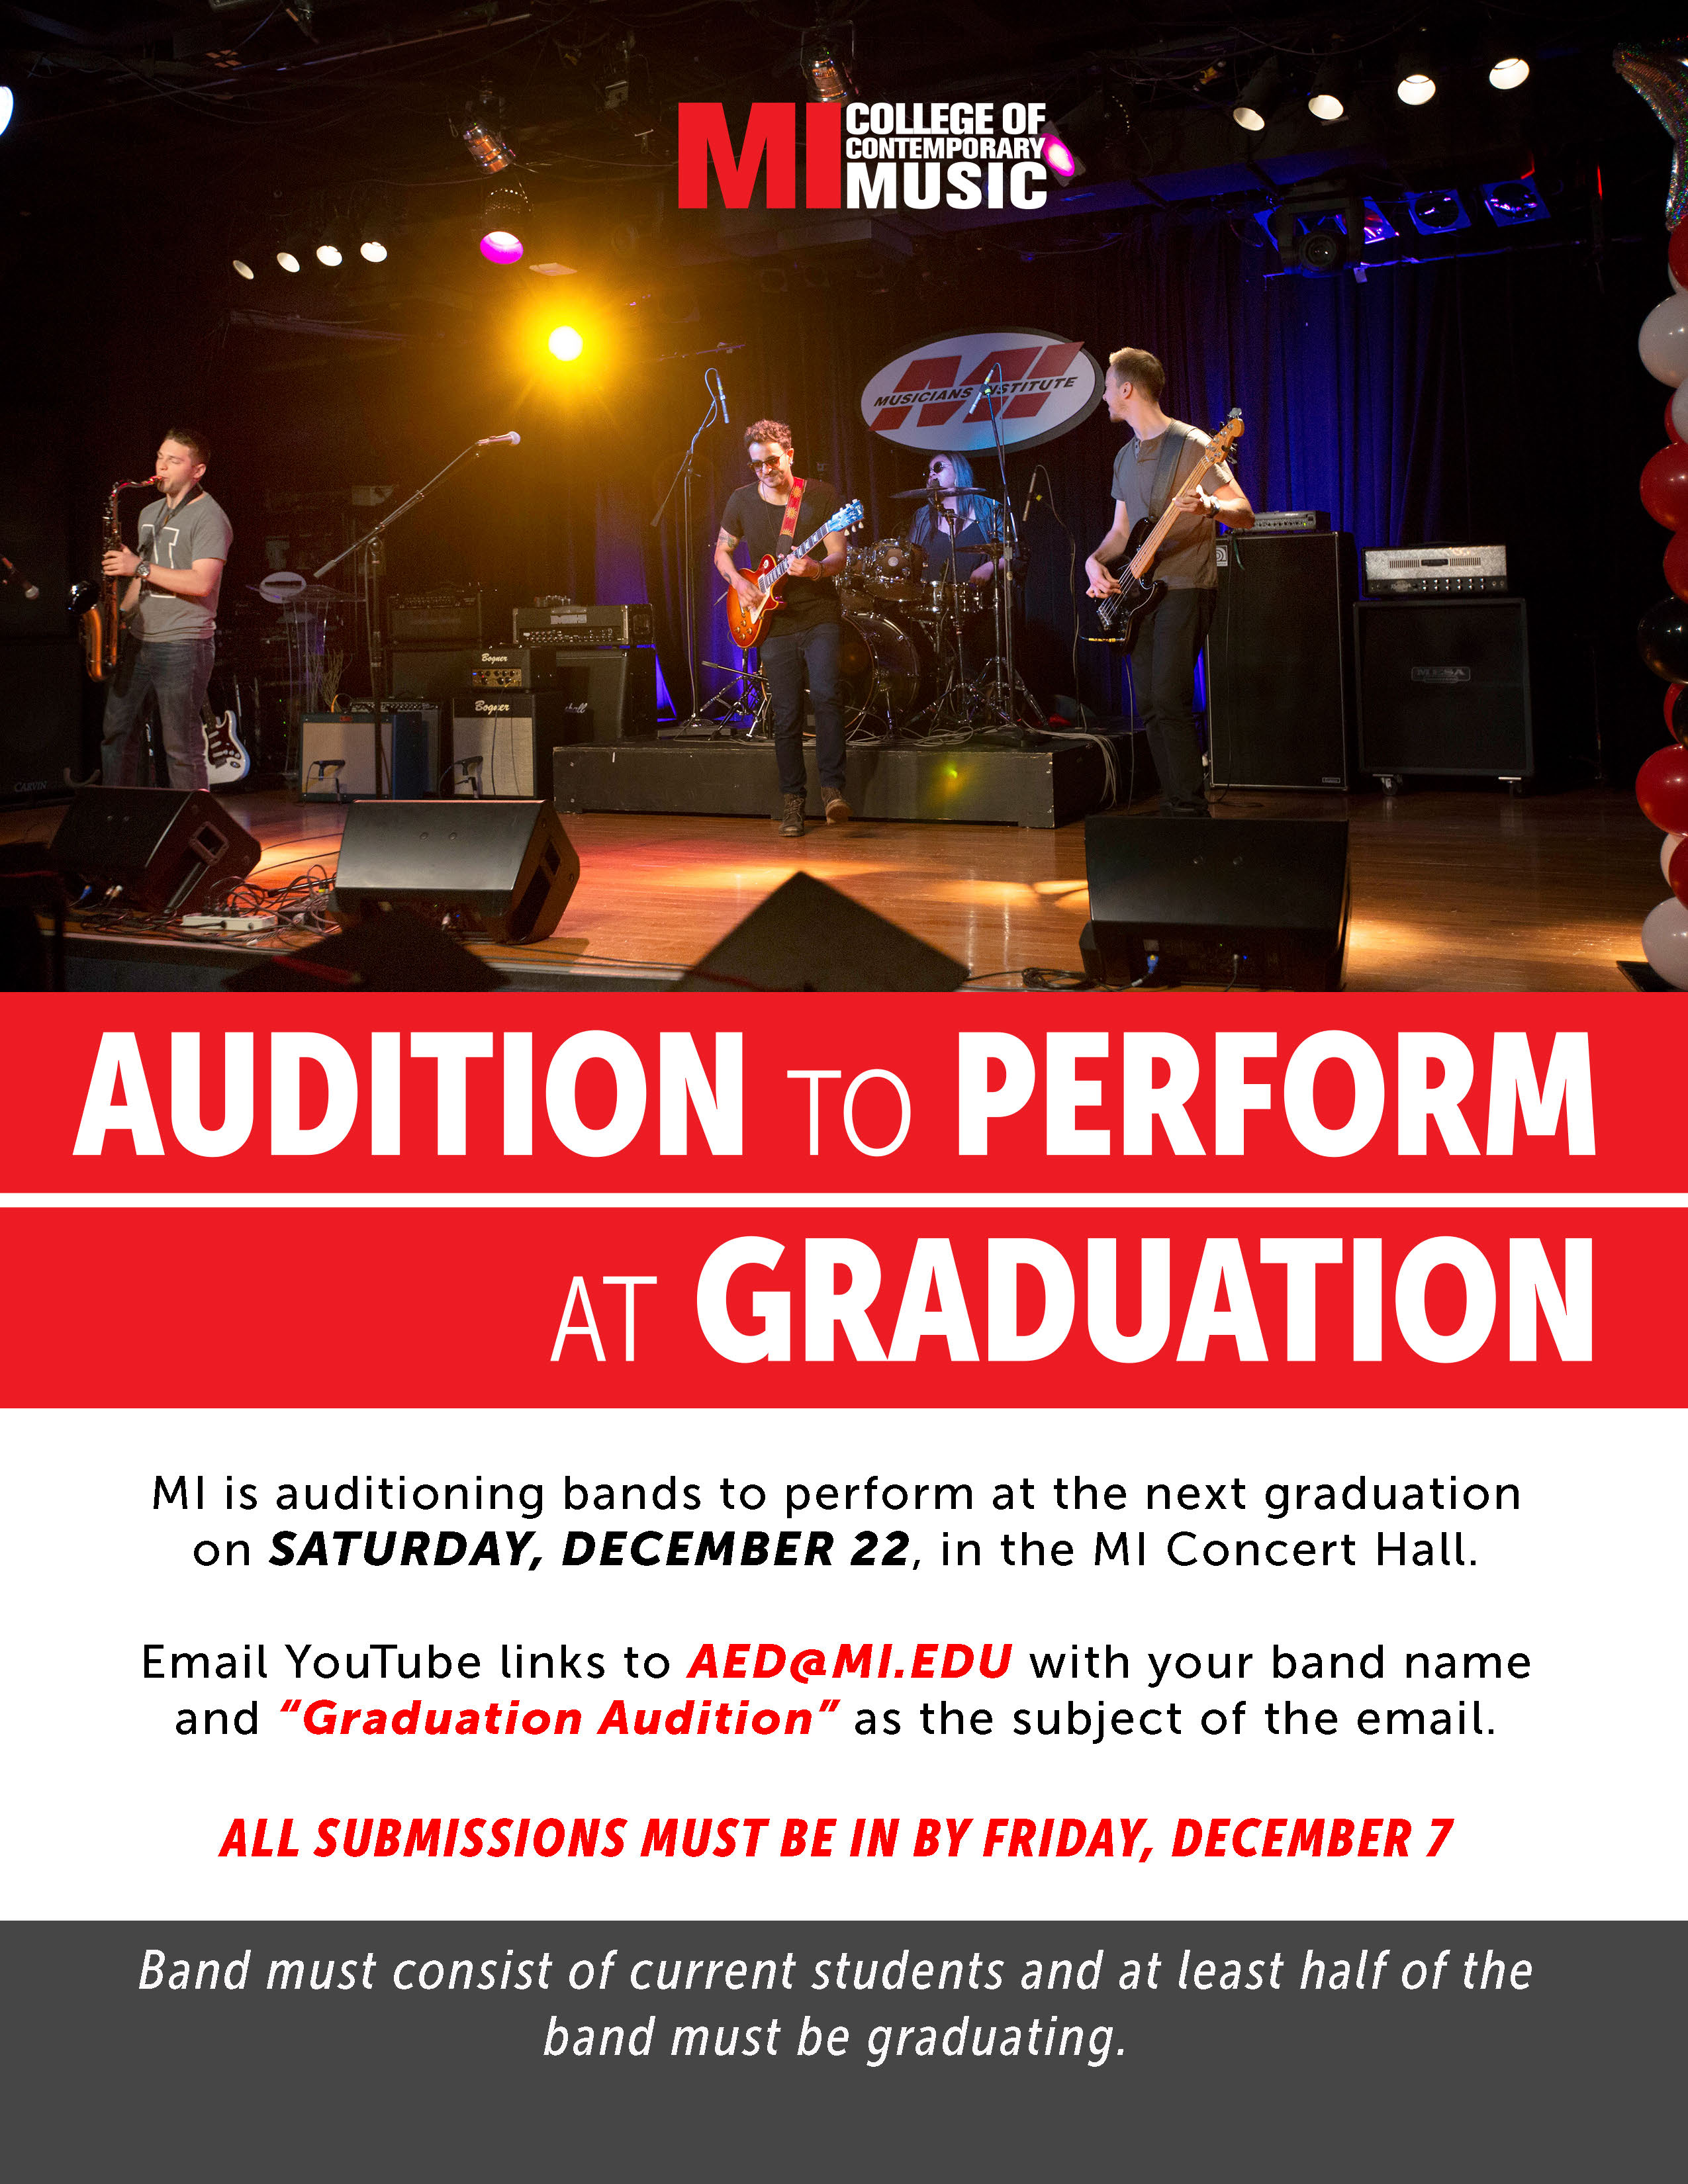 AUDITION TO PERFORM AT GRADUATION